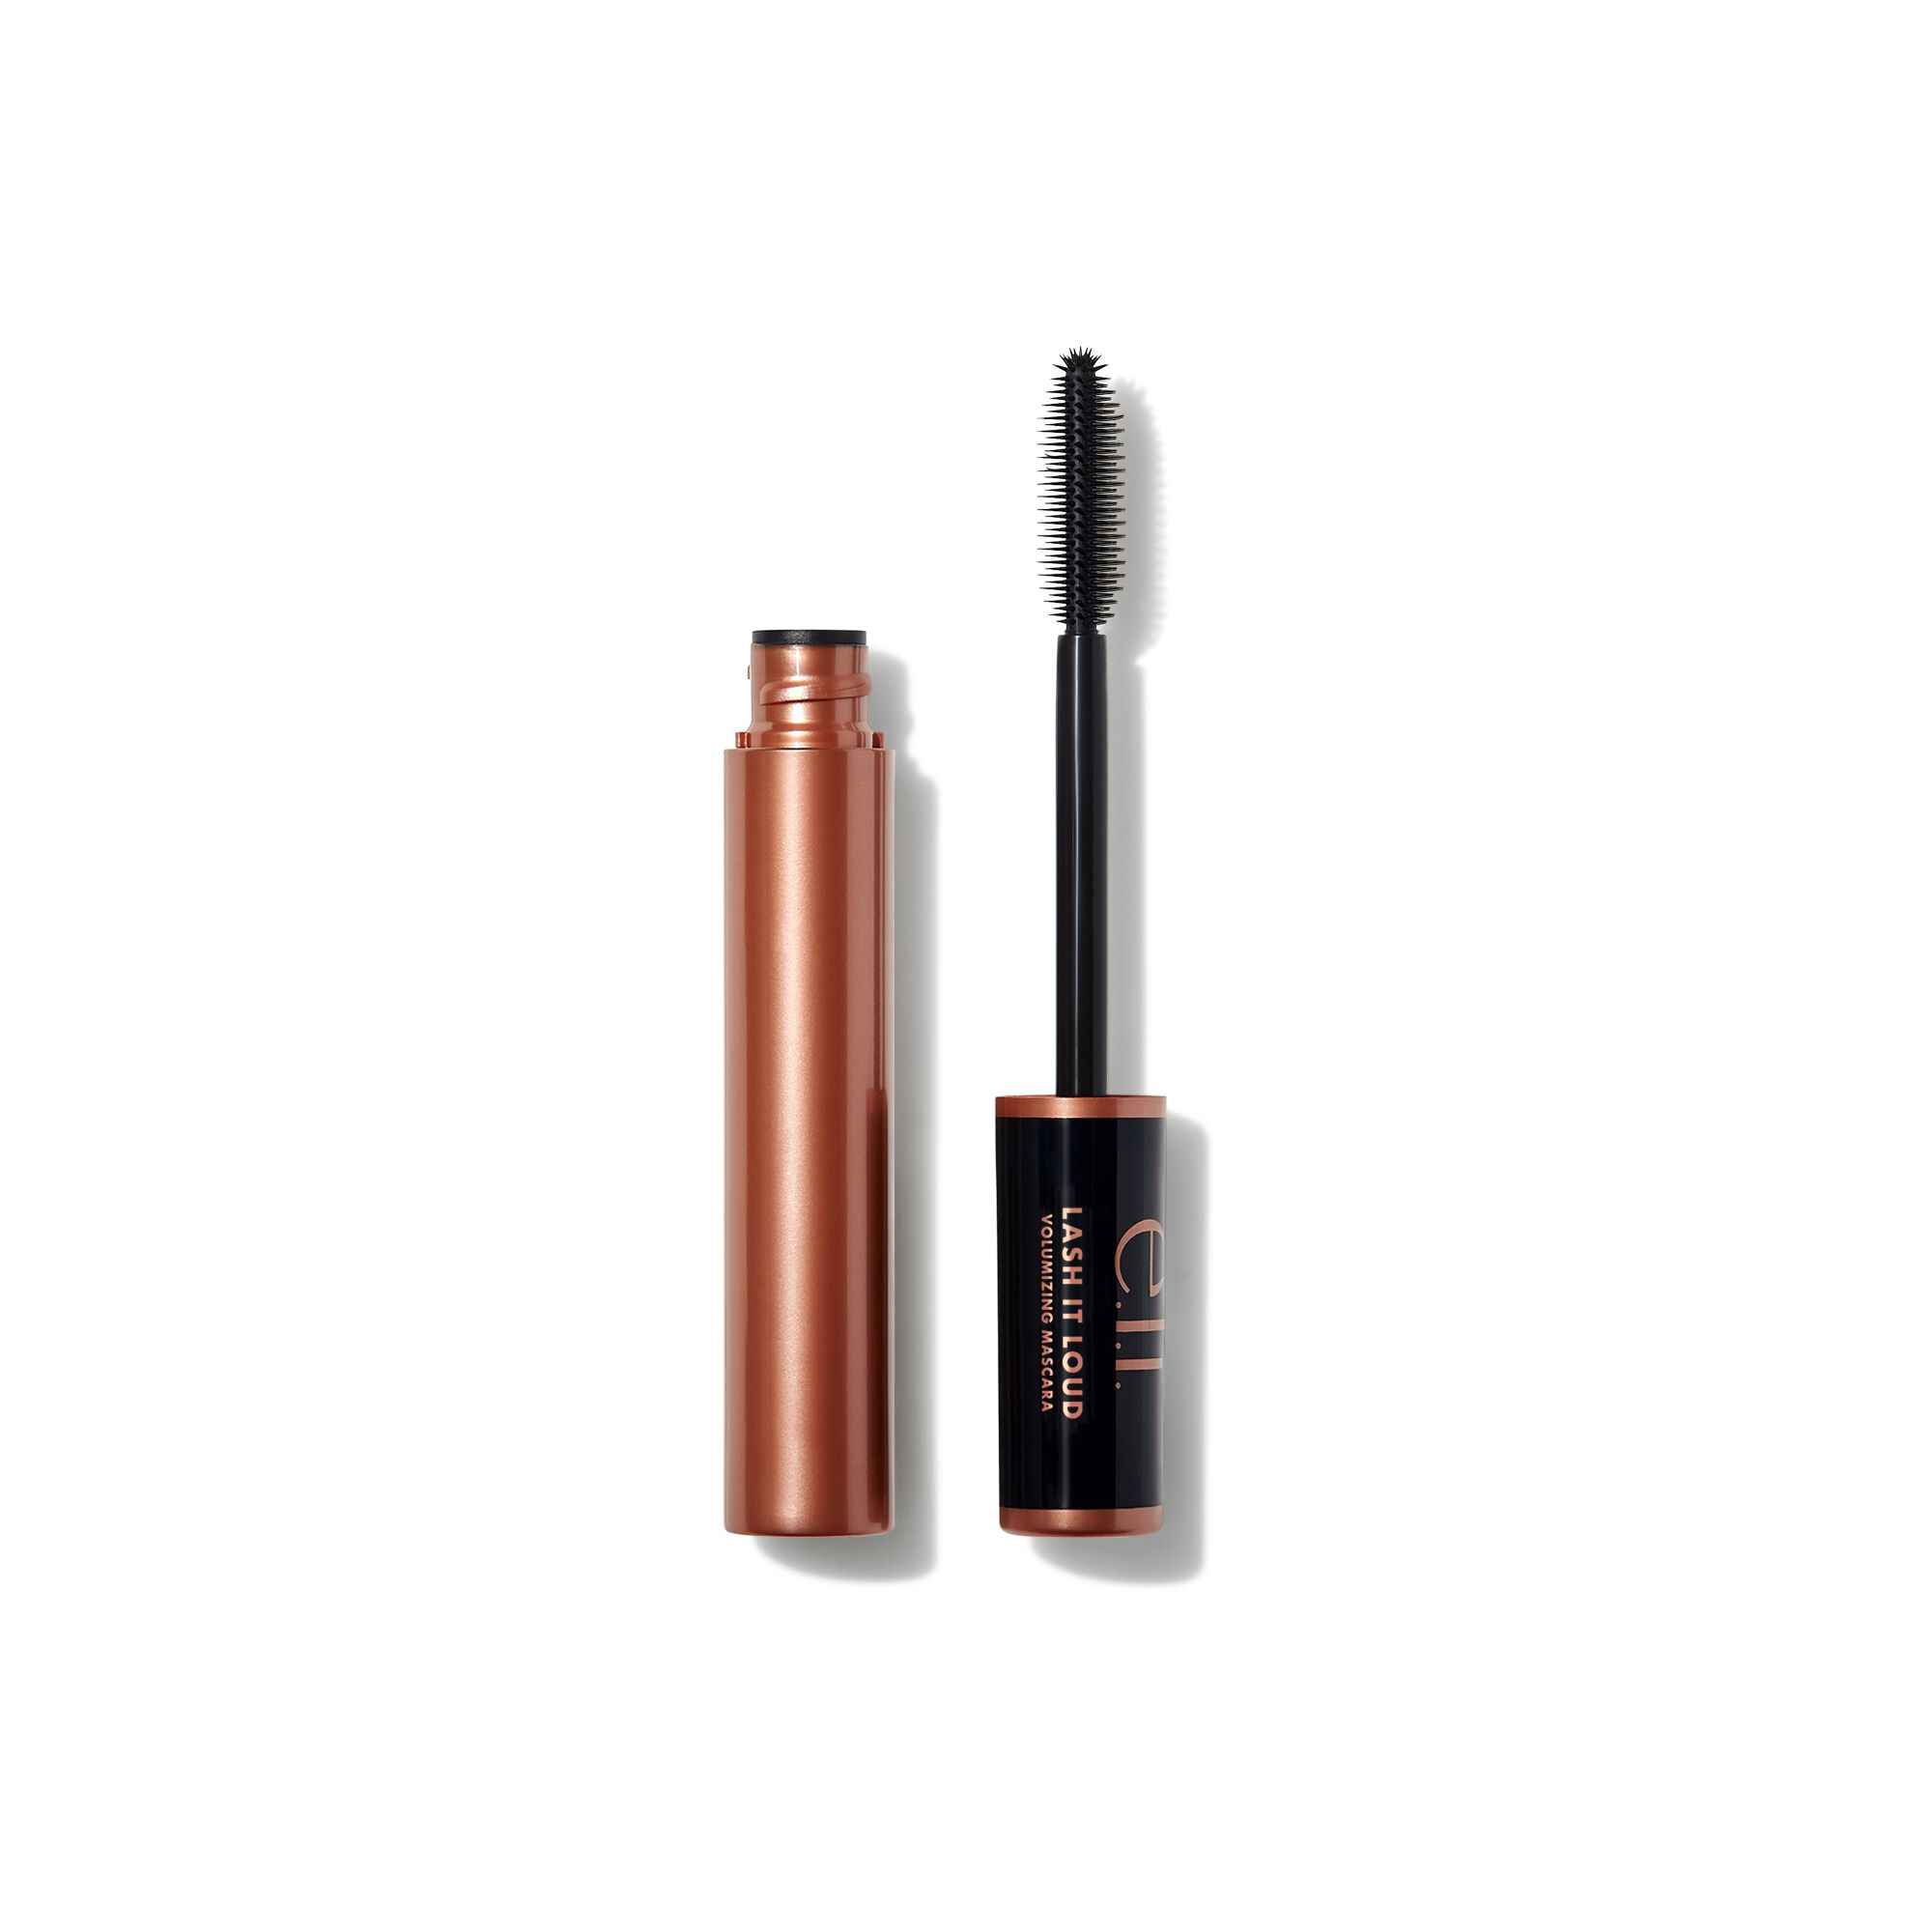 E.L.F Cosmetics: CHOOSE 2 FREE GIFTS WITH ORDERS $25+!